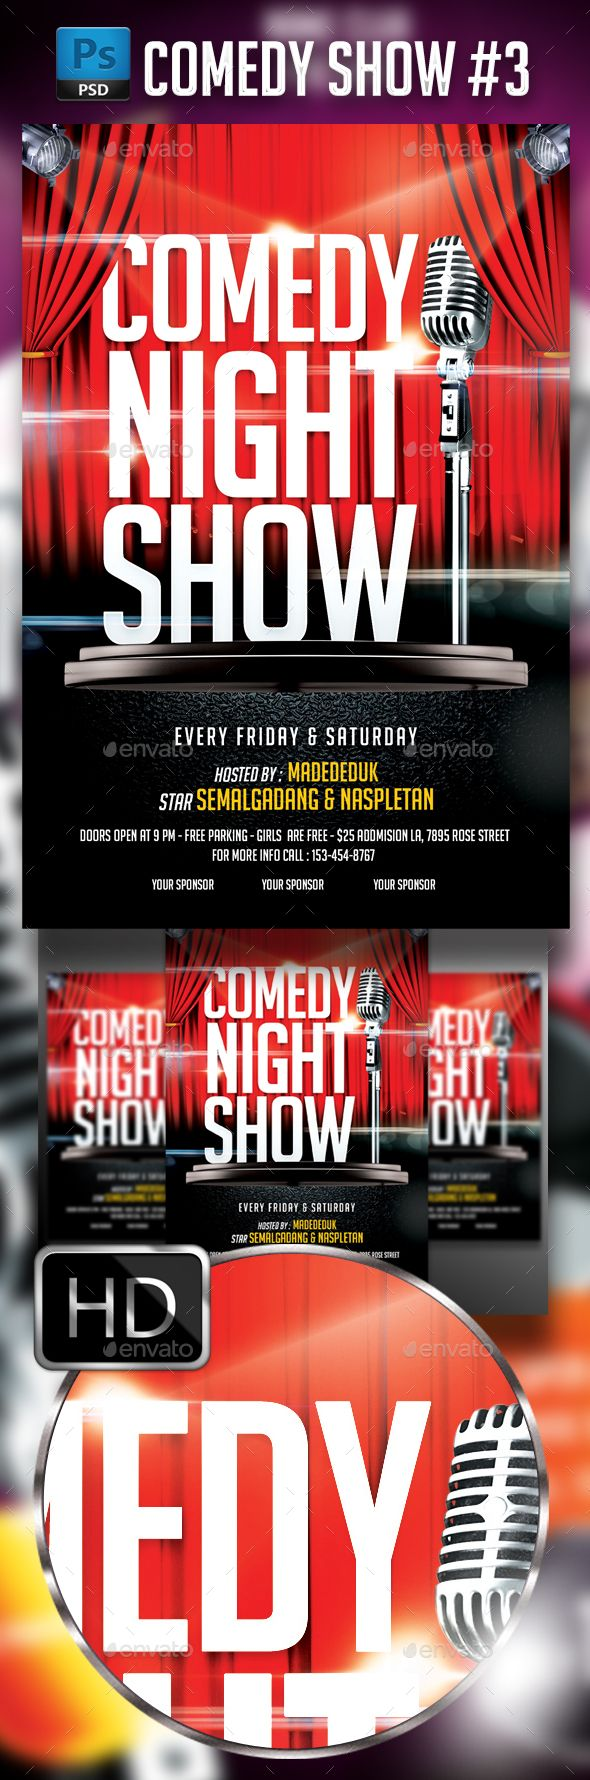 25 Best Ideas about Comedy Show – Comedy Show Flyer Template